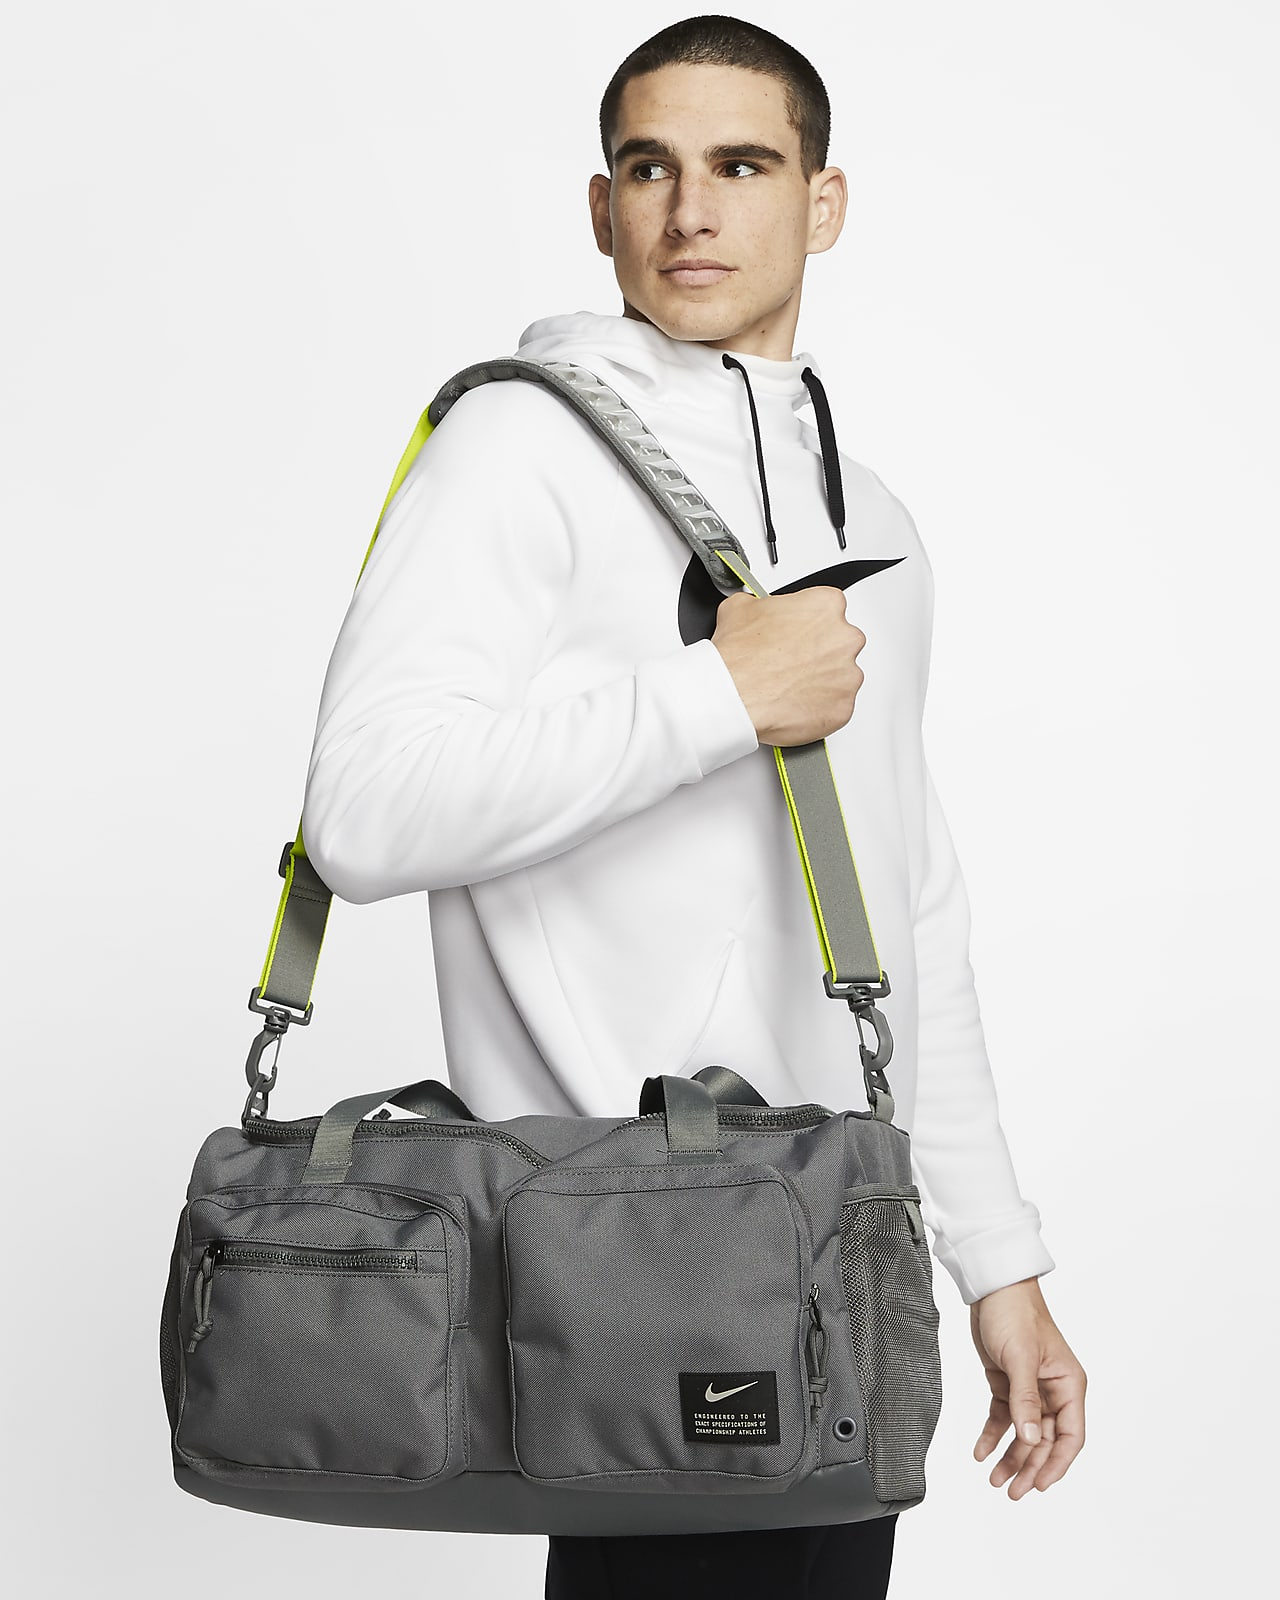 Resignación Portavoz Generacion  Nike Utility Power Training Duffel Bag (Small). Nike LU